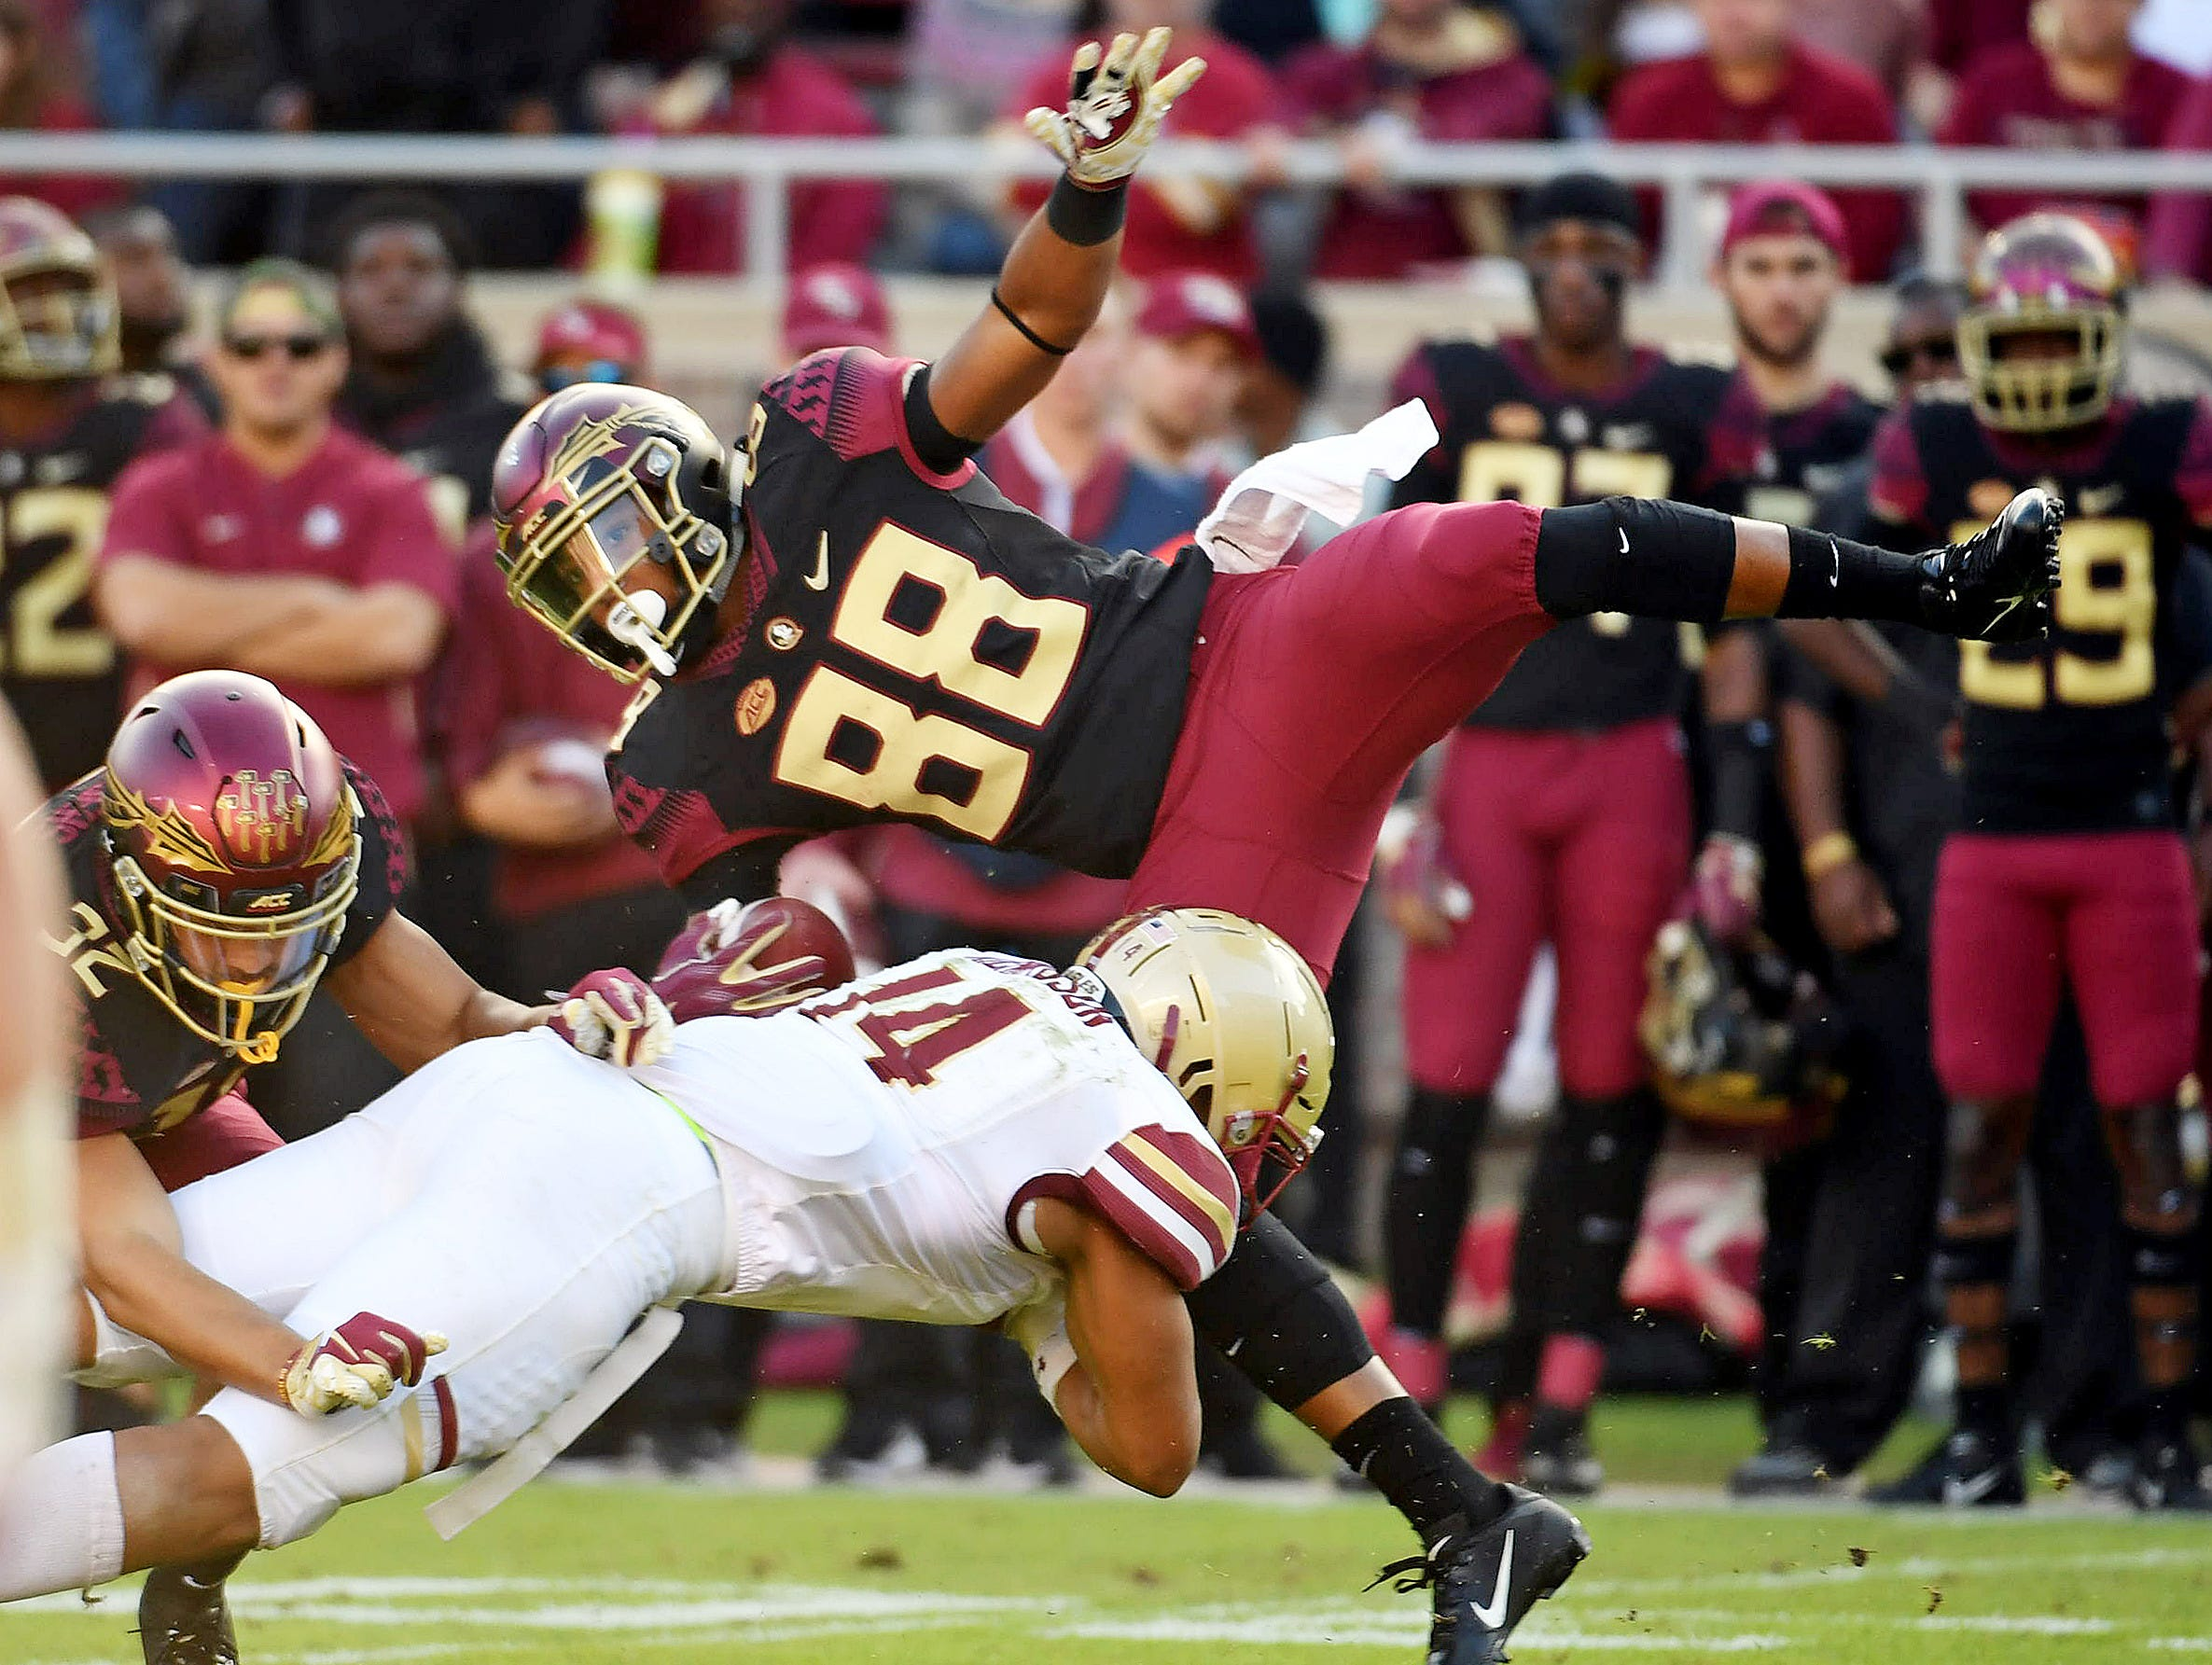 Nov 17, 2018; Tallahassee, FL, USA; Florida State Seminoles wide receiver Tre'Shaun Harrison (88) is tackled by Boston College Eagles linebacker Max Richardson (14) during the first half at Doak Campbell Stadium. Mandatory Credit: Melina Myers-USA TODAY Sports